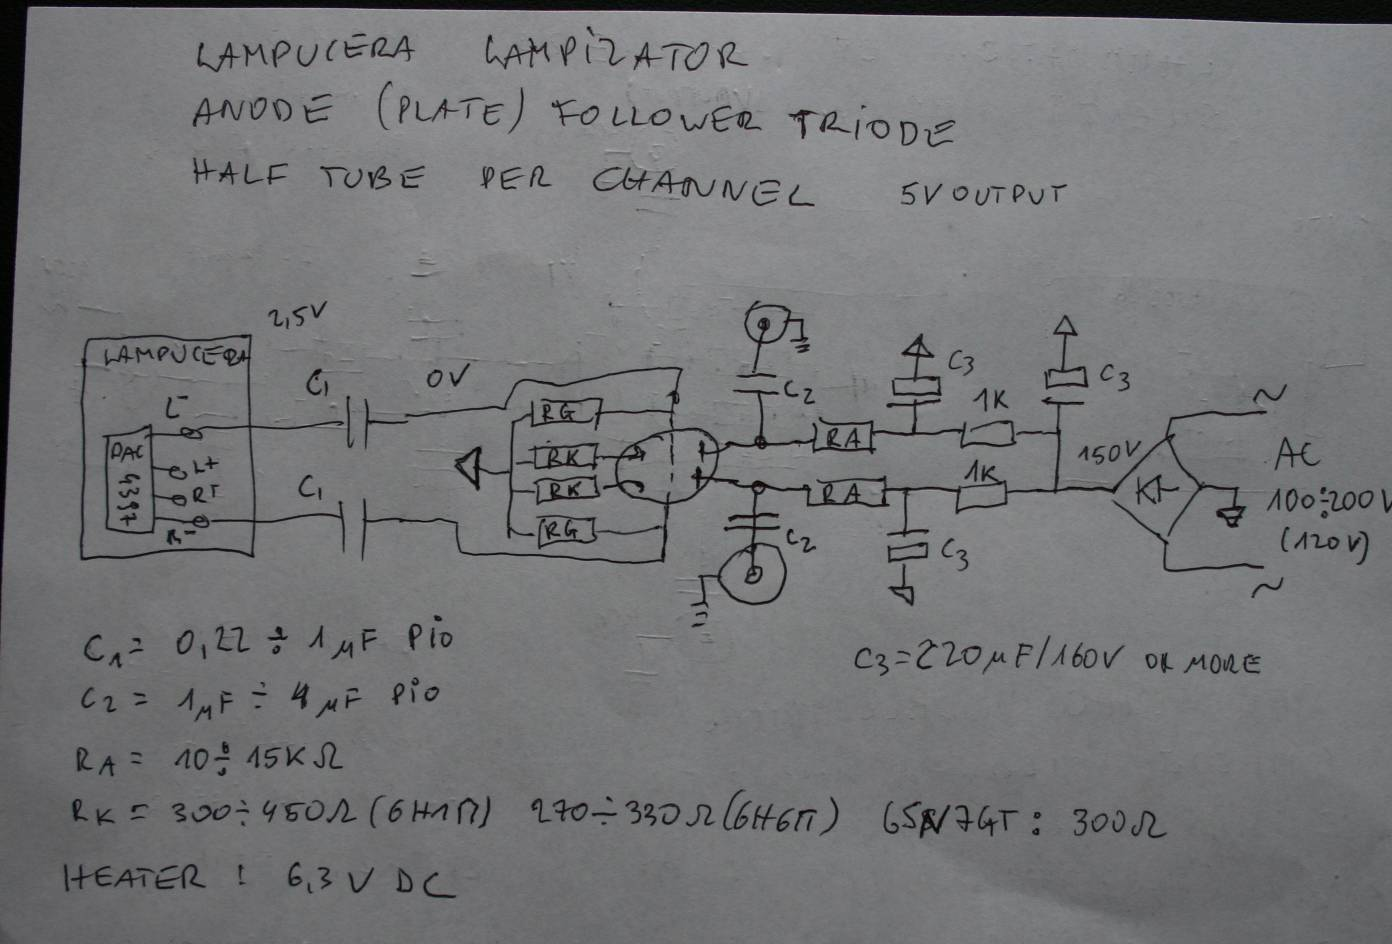 Request for help - Looking for someone to help me understand the lampizator circuit  diagram